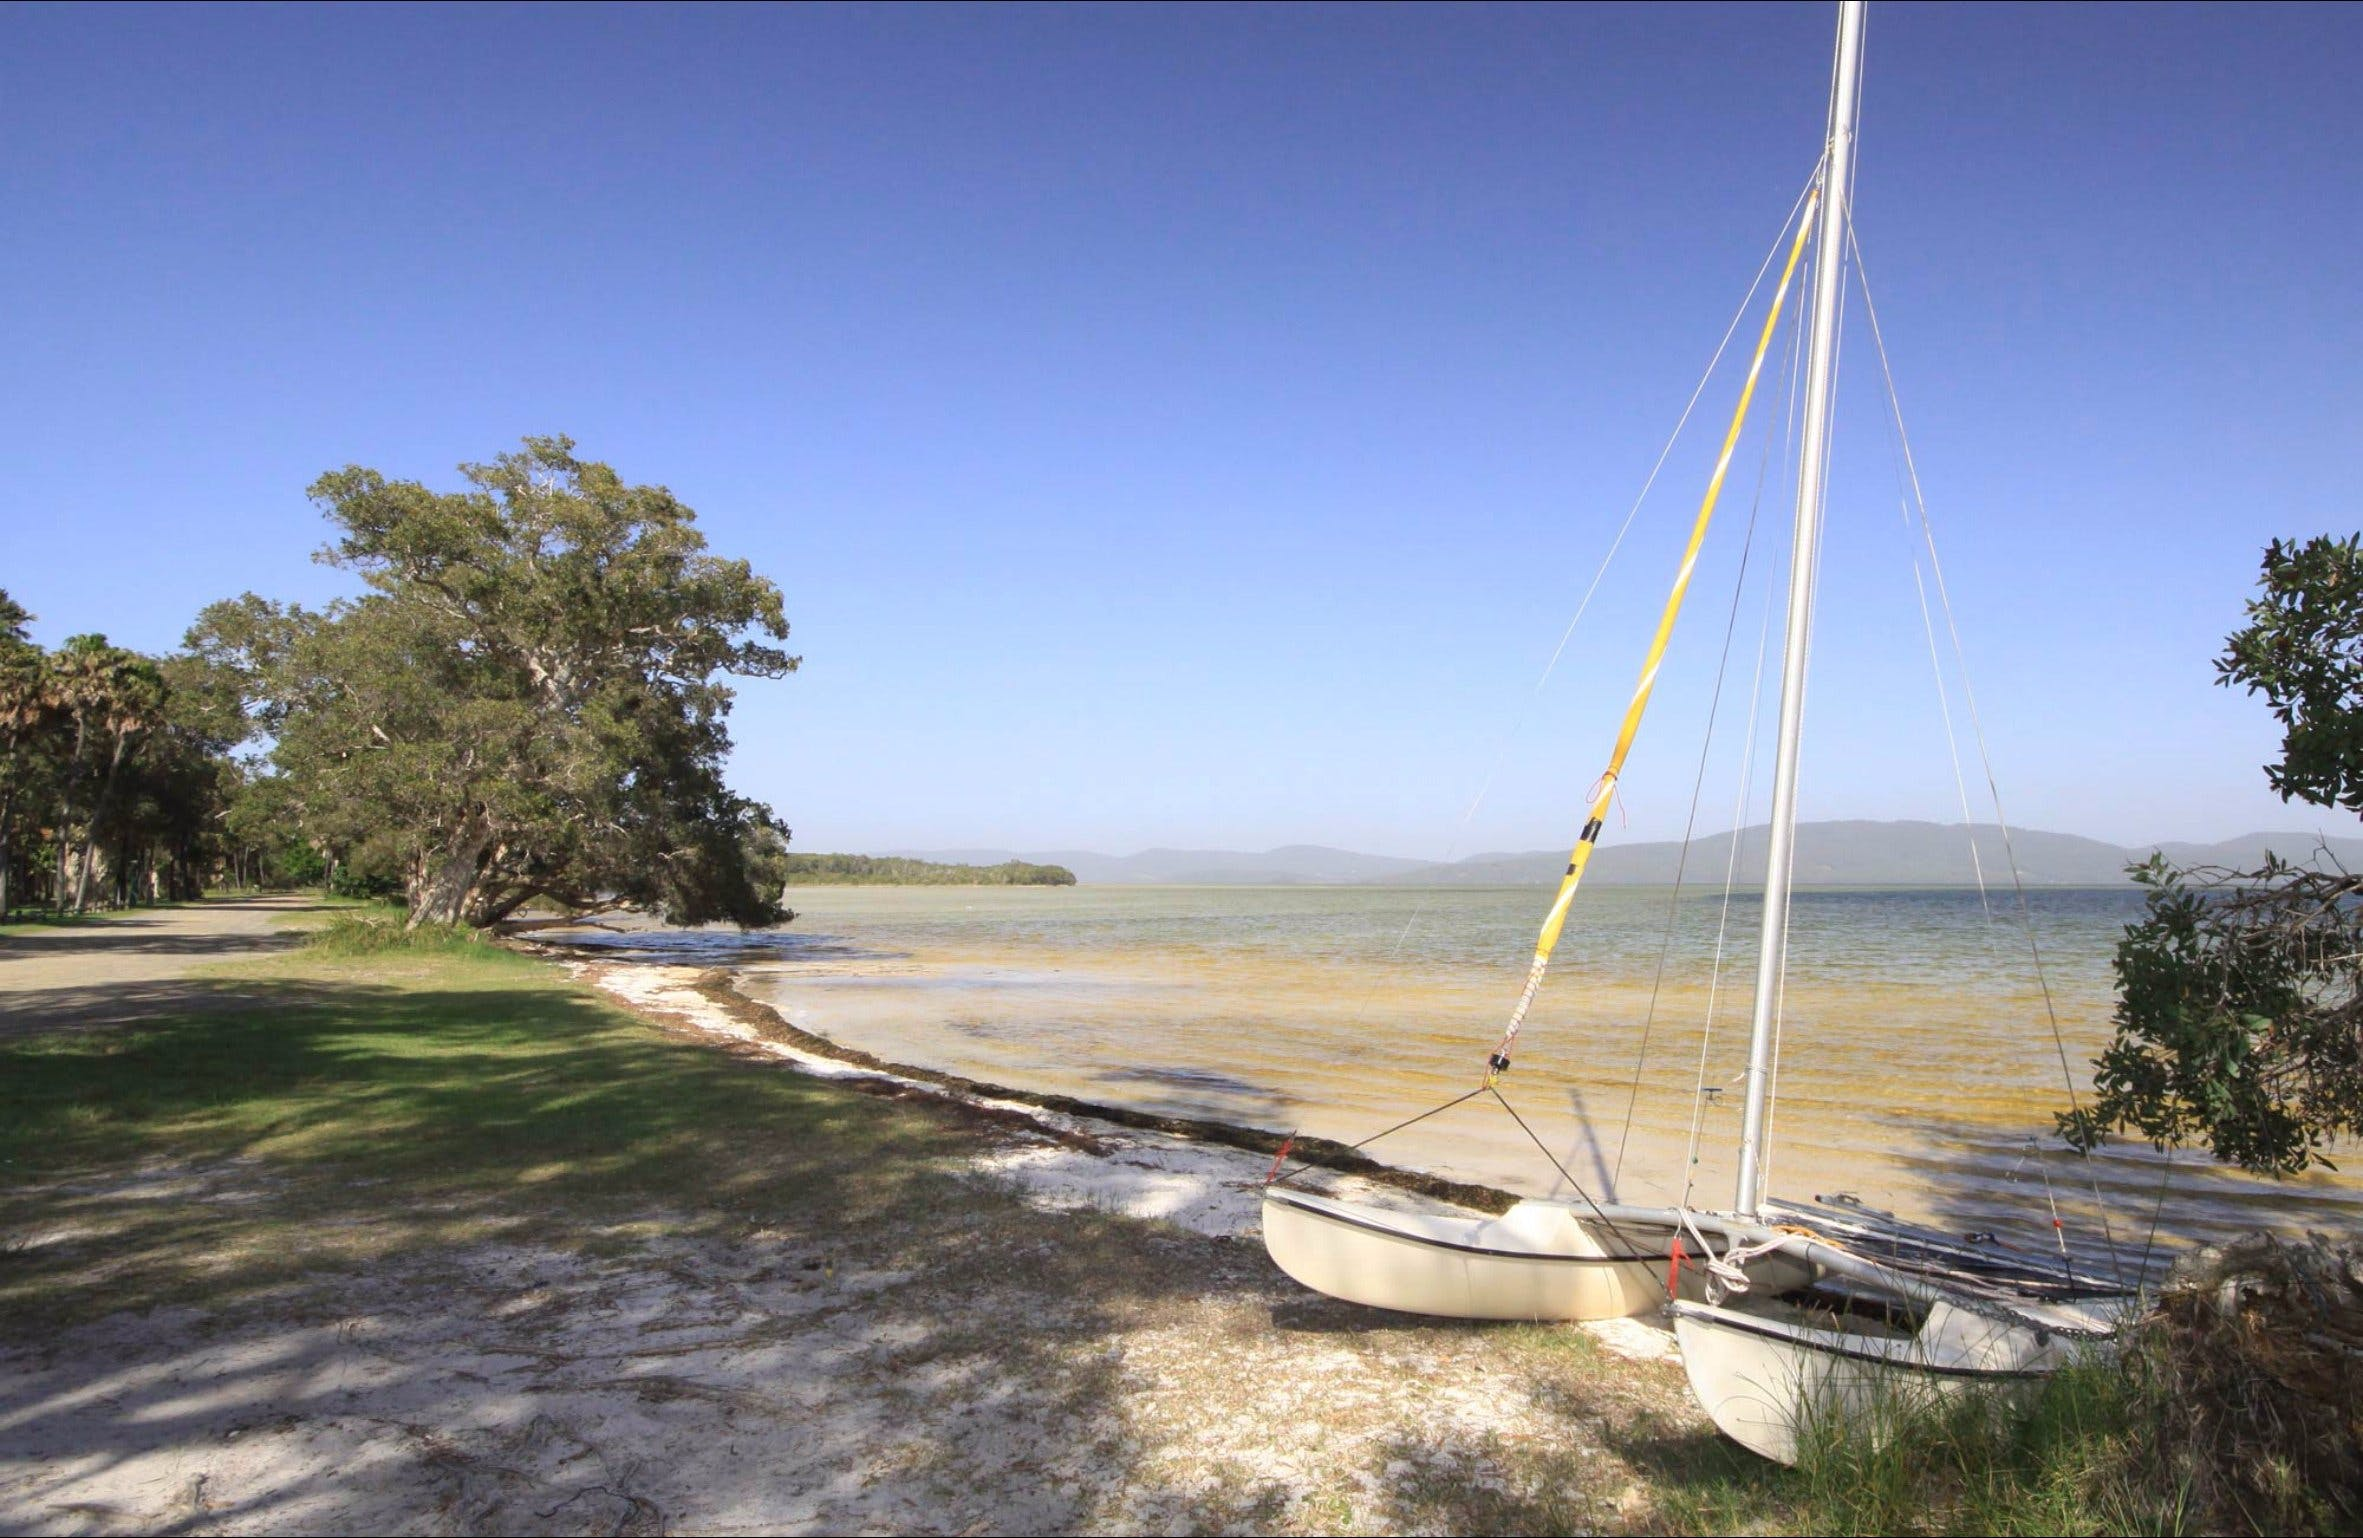 Sailing Club picnic area - Accommodation Yamba